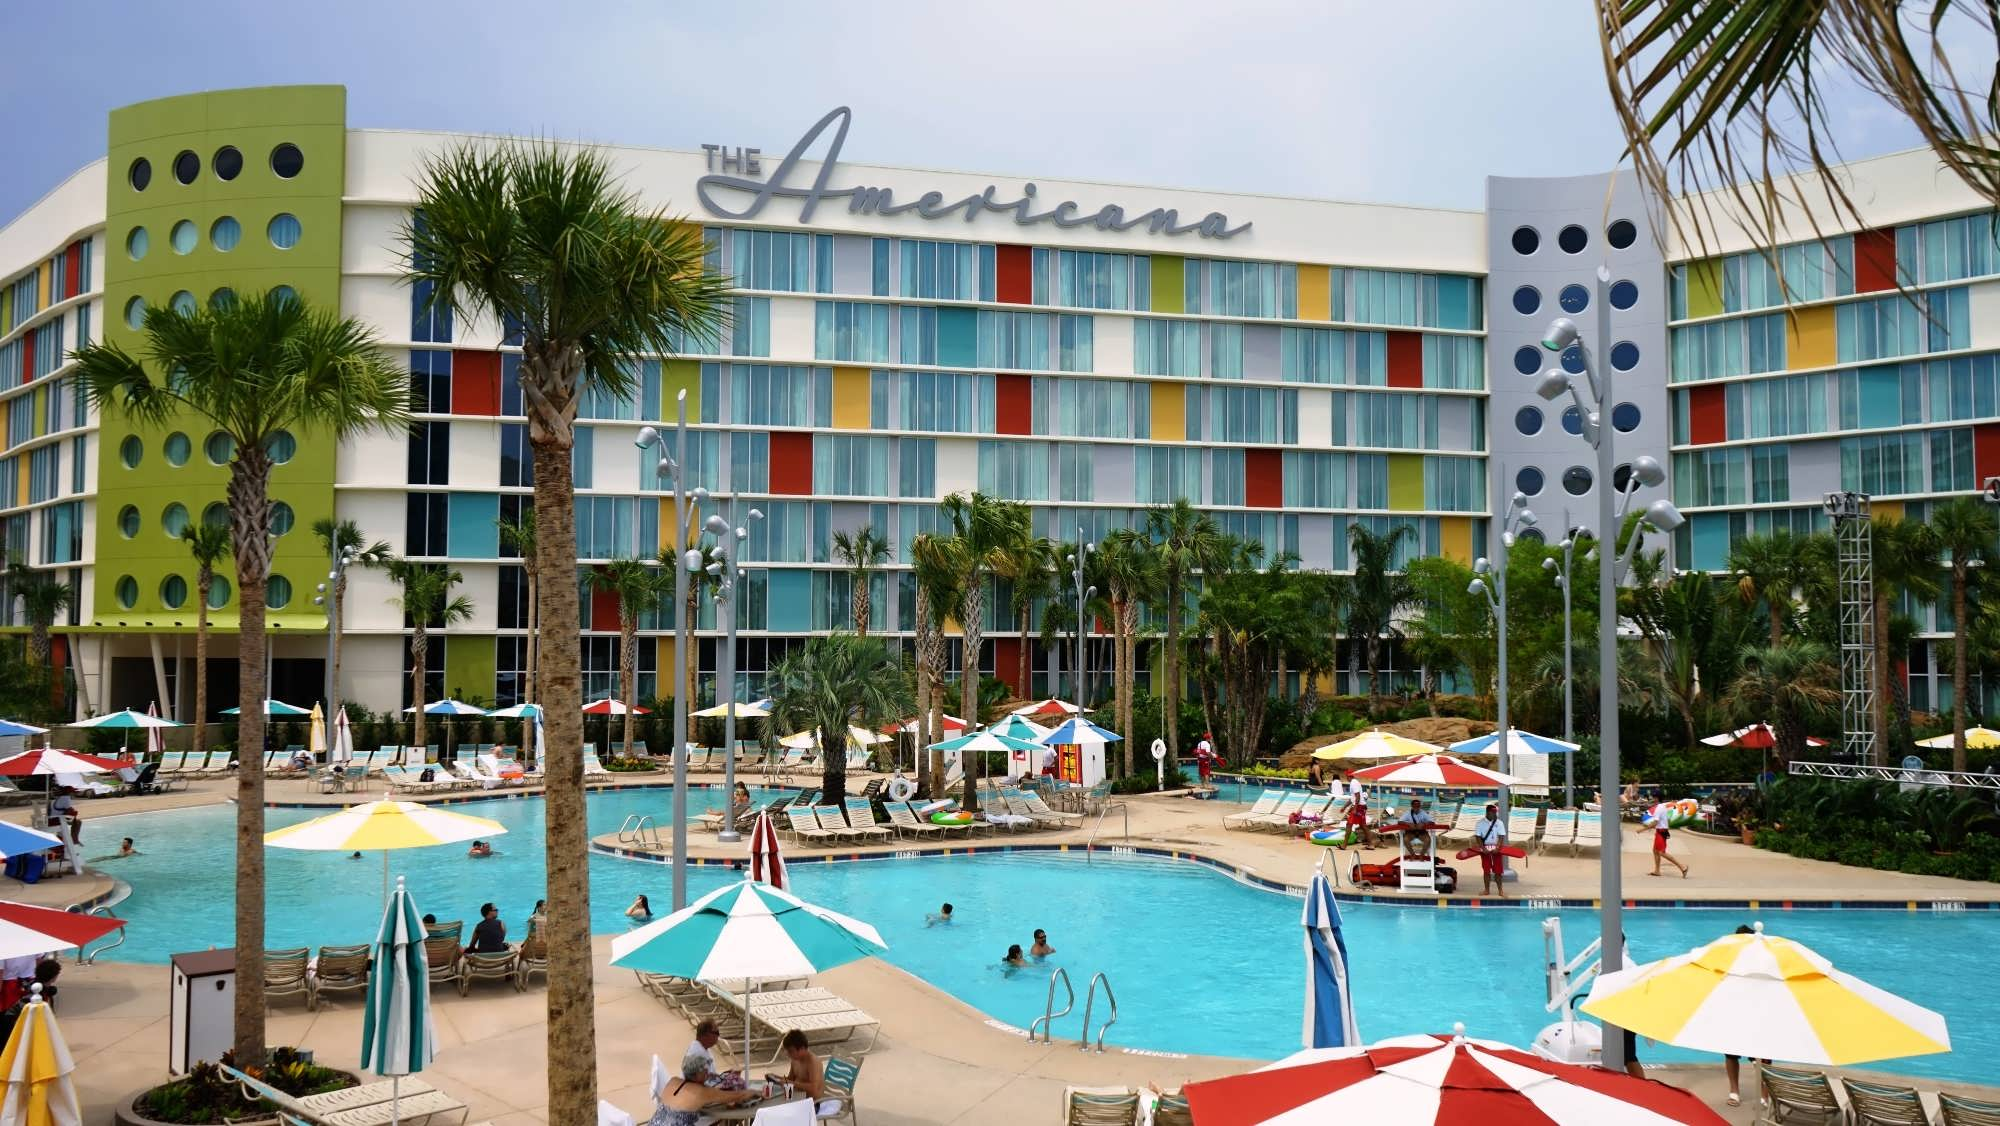 Cabana Bay Beach Resort Pool areas  photo gallery